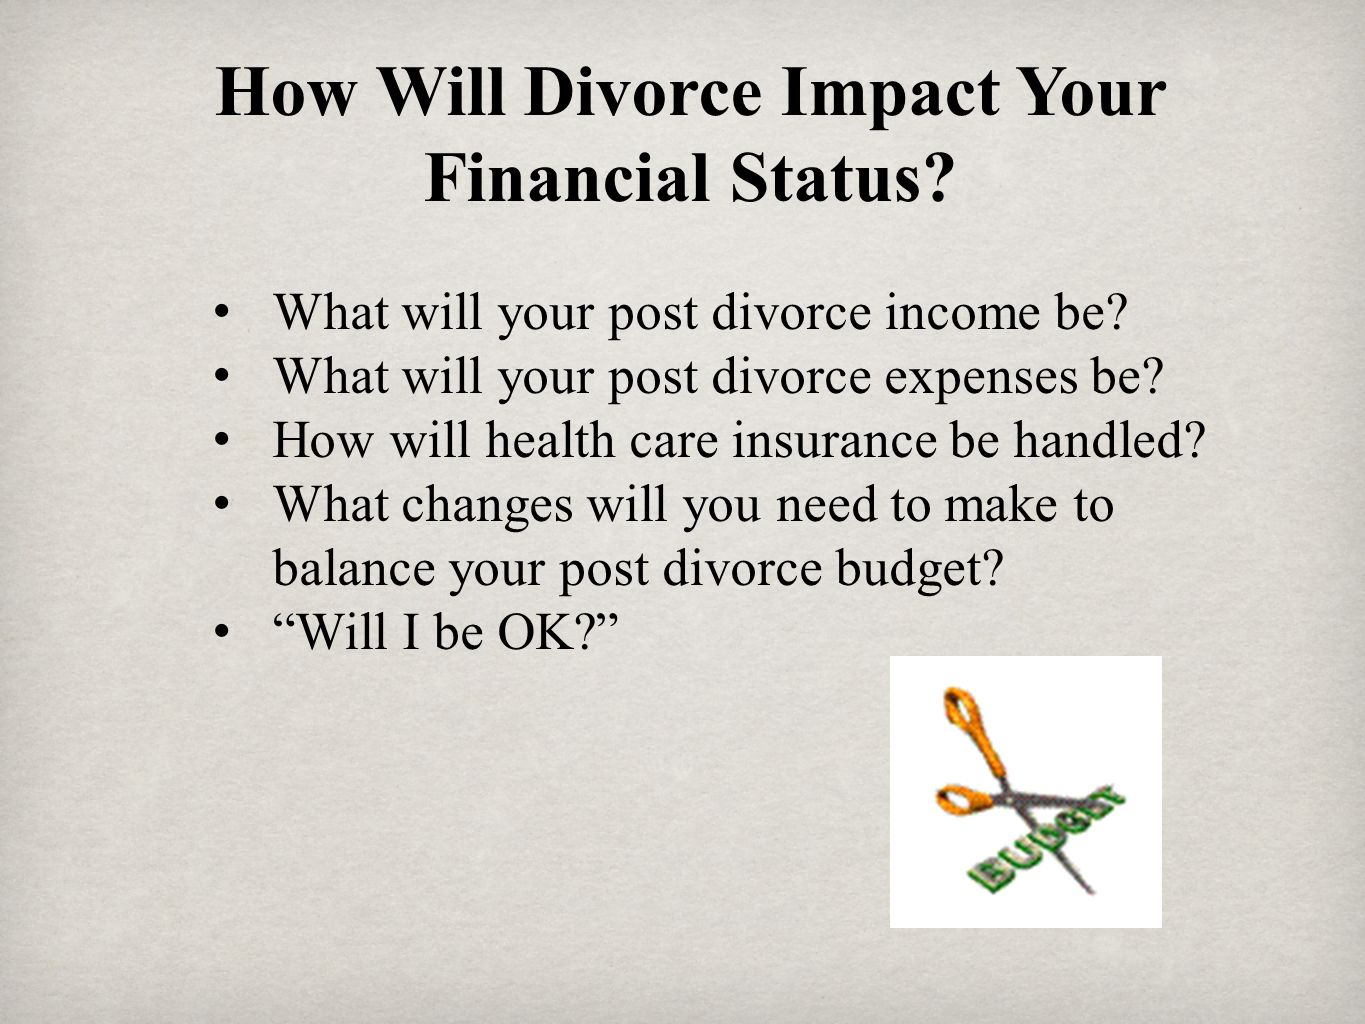 How Will Divorce Impact Your Financial Status